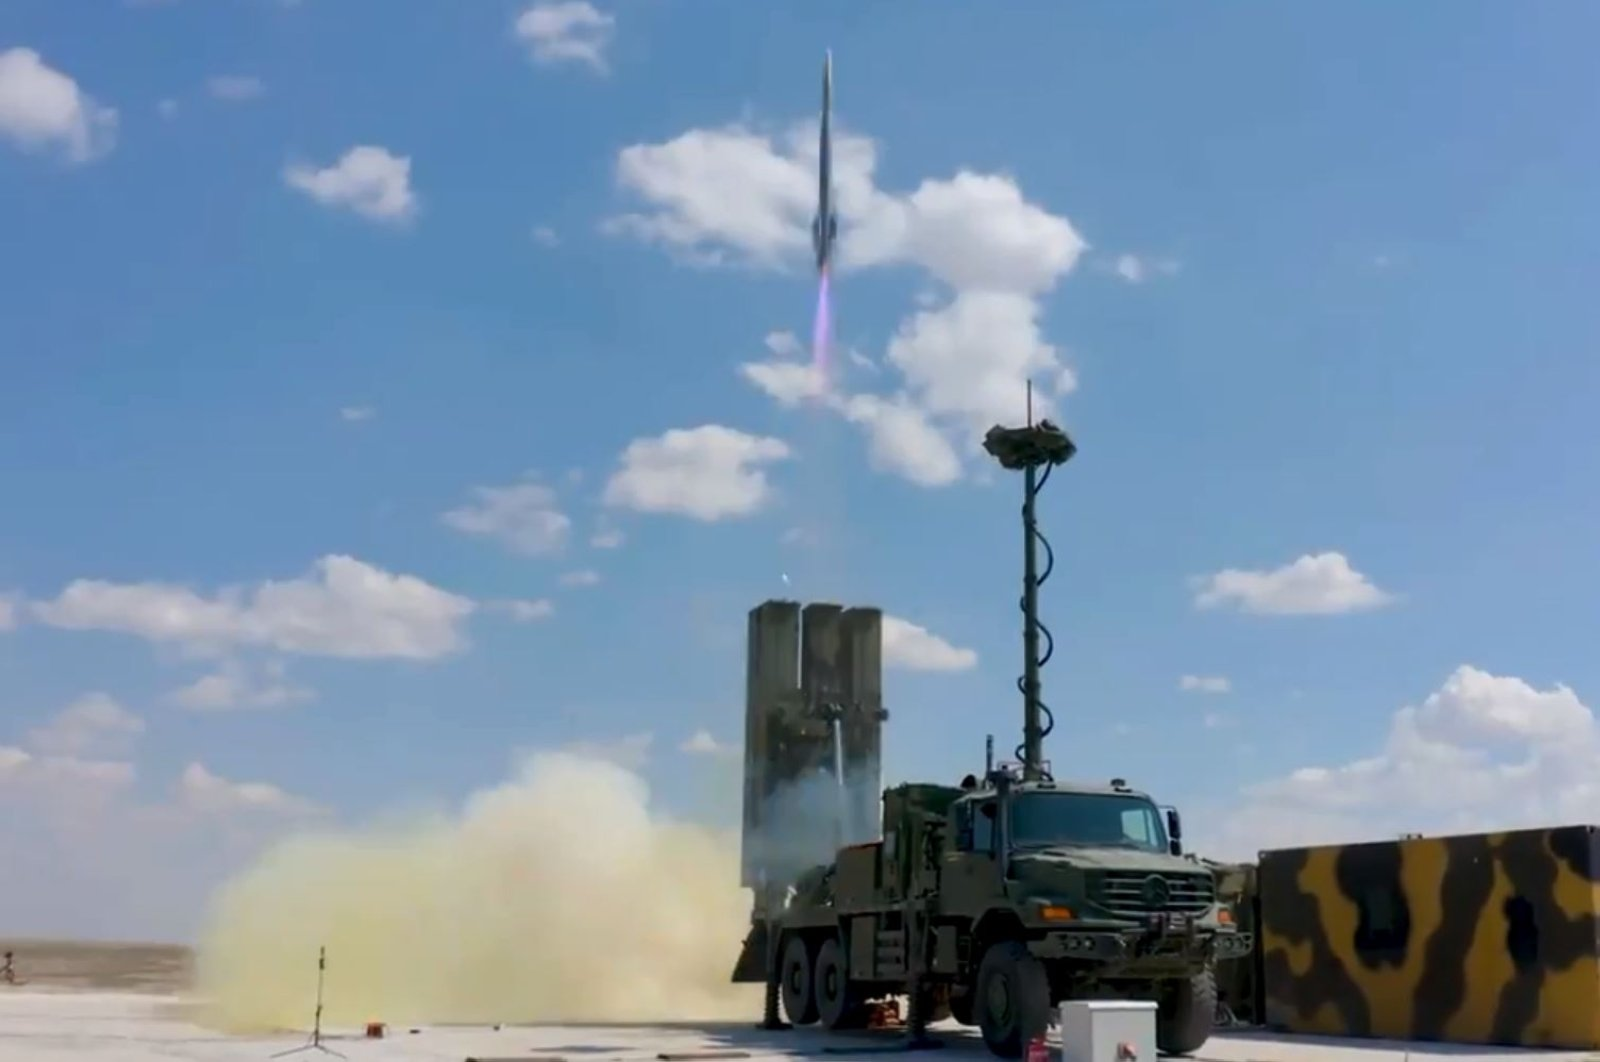 A screengrab from the video showing the Hisar O+ air defense system's test firing, July 10, 2021. (DHA Photo)